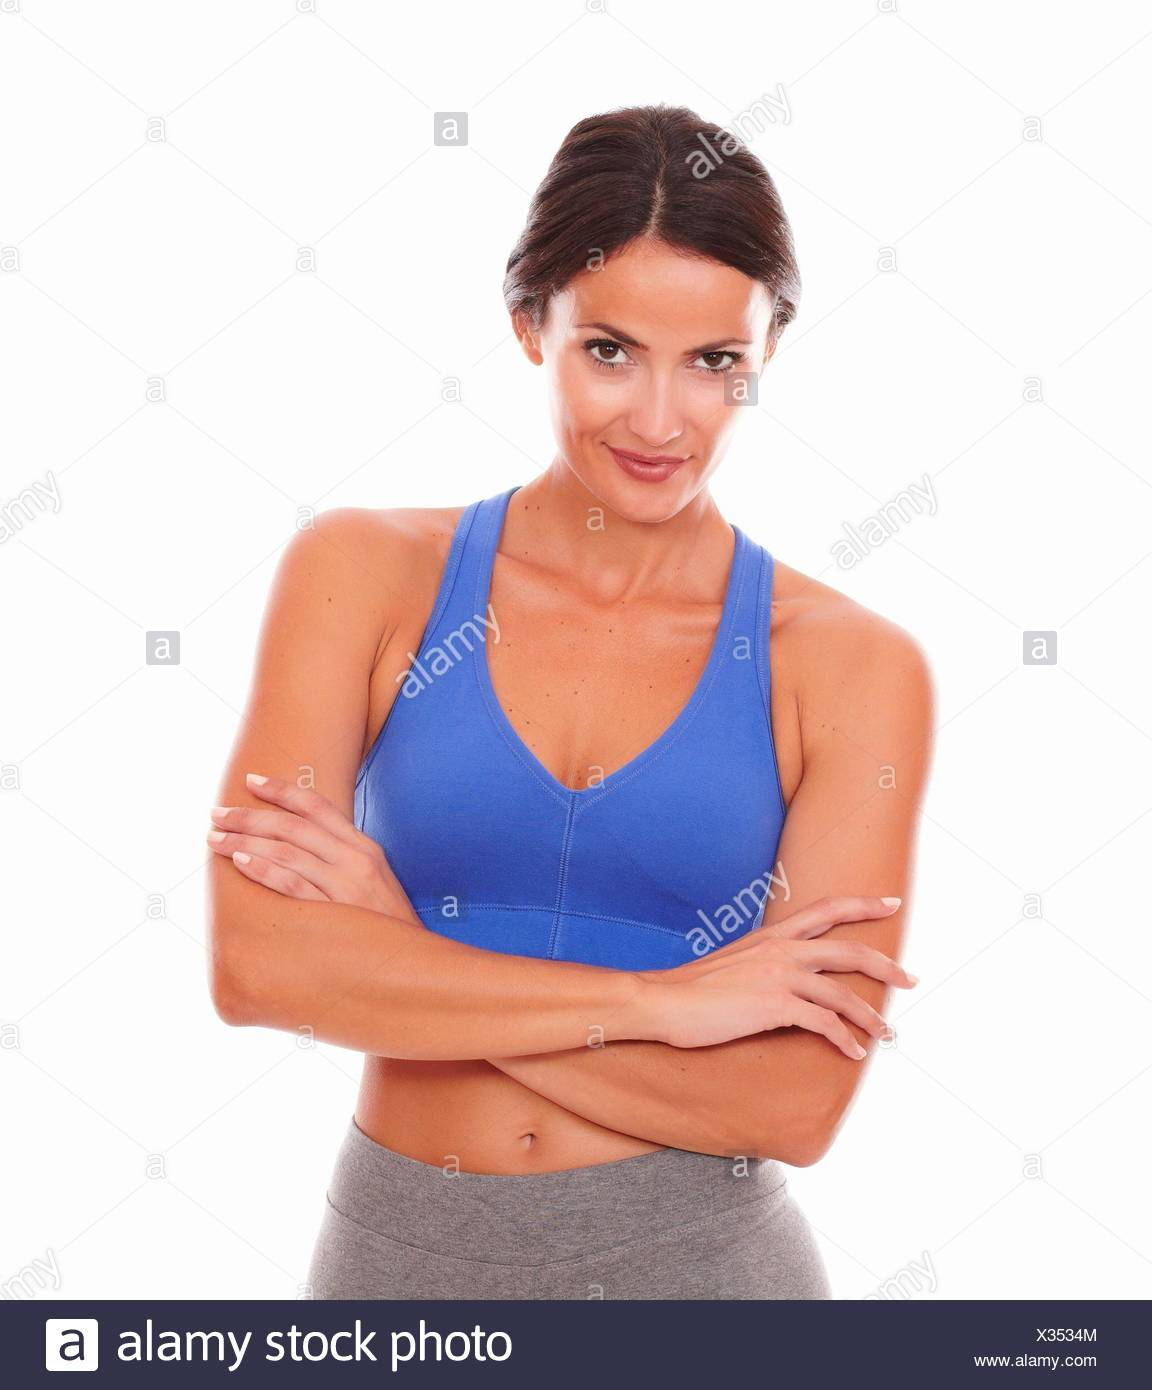 Latin lady in sports outfit looking at you against white background. Stock Photo